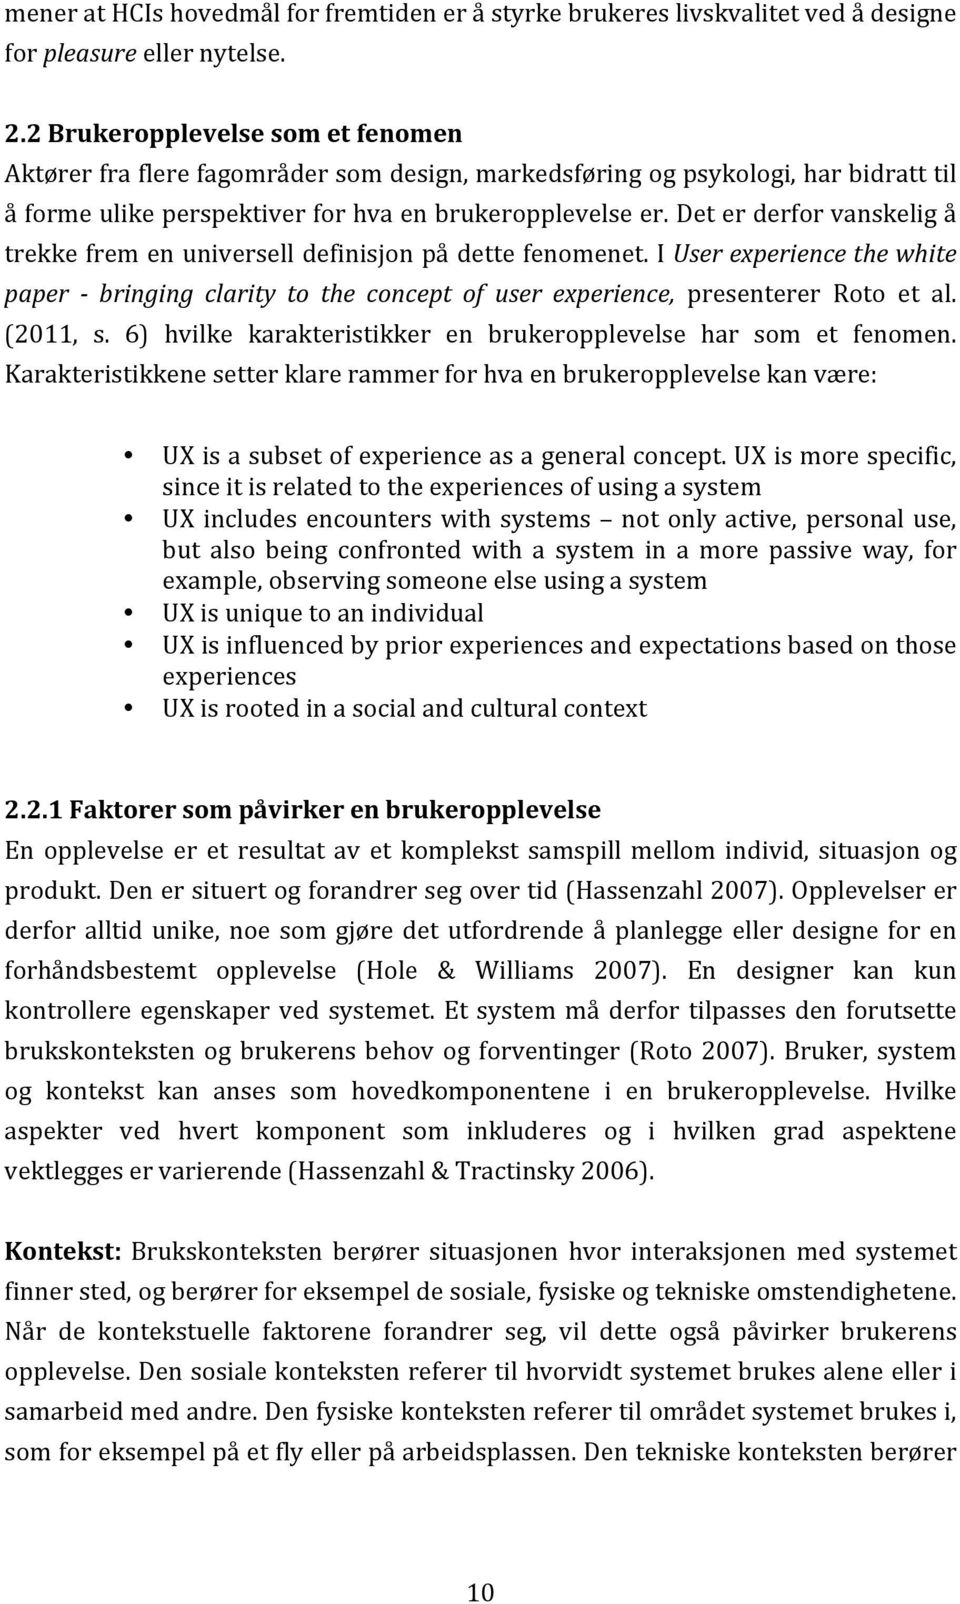 deterderforvanskeligå trekkefremenuniverselldefinisjonpådettefenomenet.iuser'experience'the'white' paper' *' bringing' clarity' to' the' concept' of' user' experience, presenterer Roto et al.